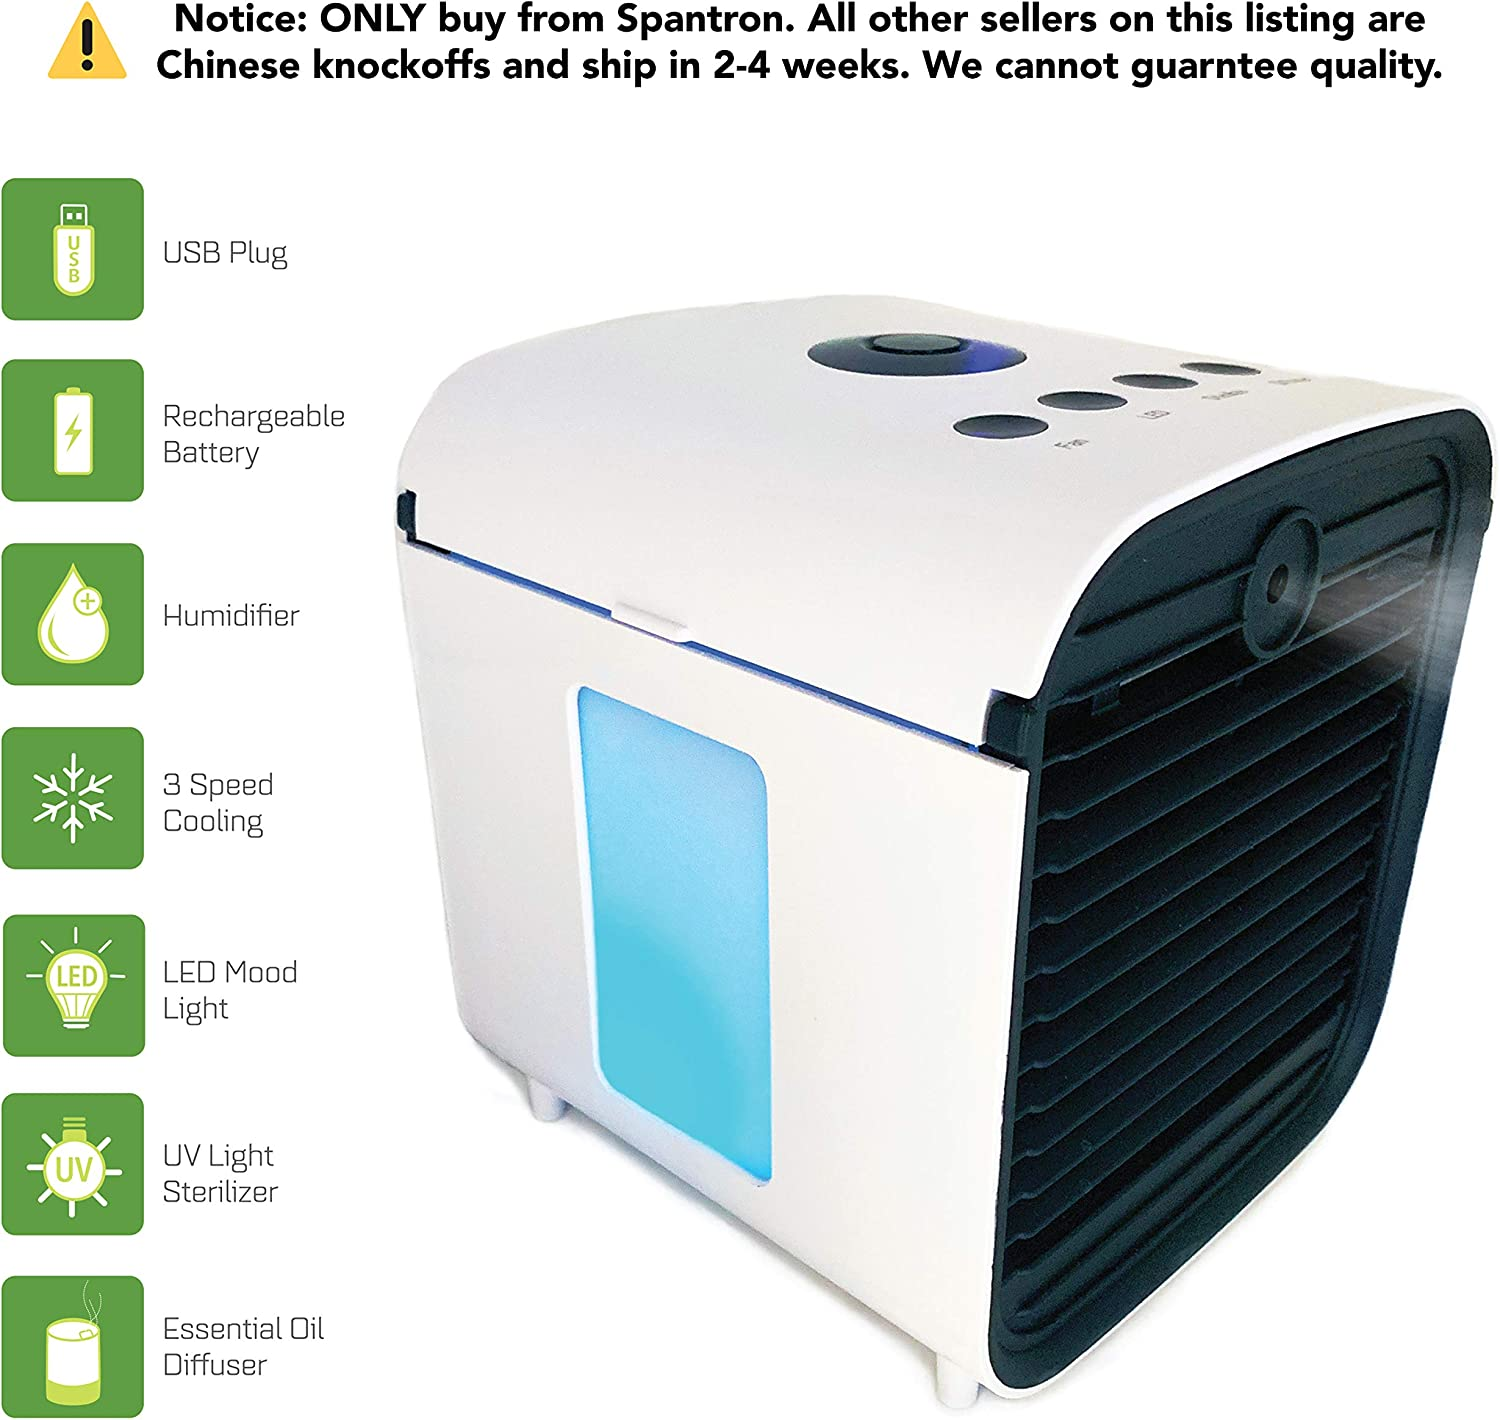 Spantron Portable Air Conditioner Fan - Best 5-in-1 Personal Home & Office Desk Swamp Cooler, Mist Diffuser, Humidifier with LED Light and UV Purifier   USB Plug & 2 Hour Rechargeable Battery